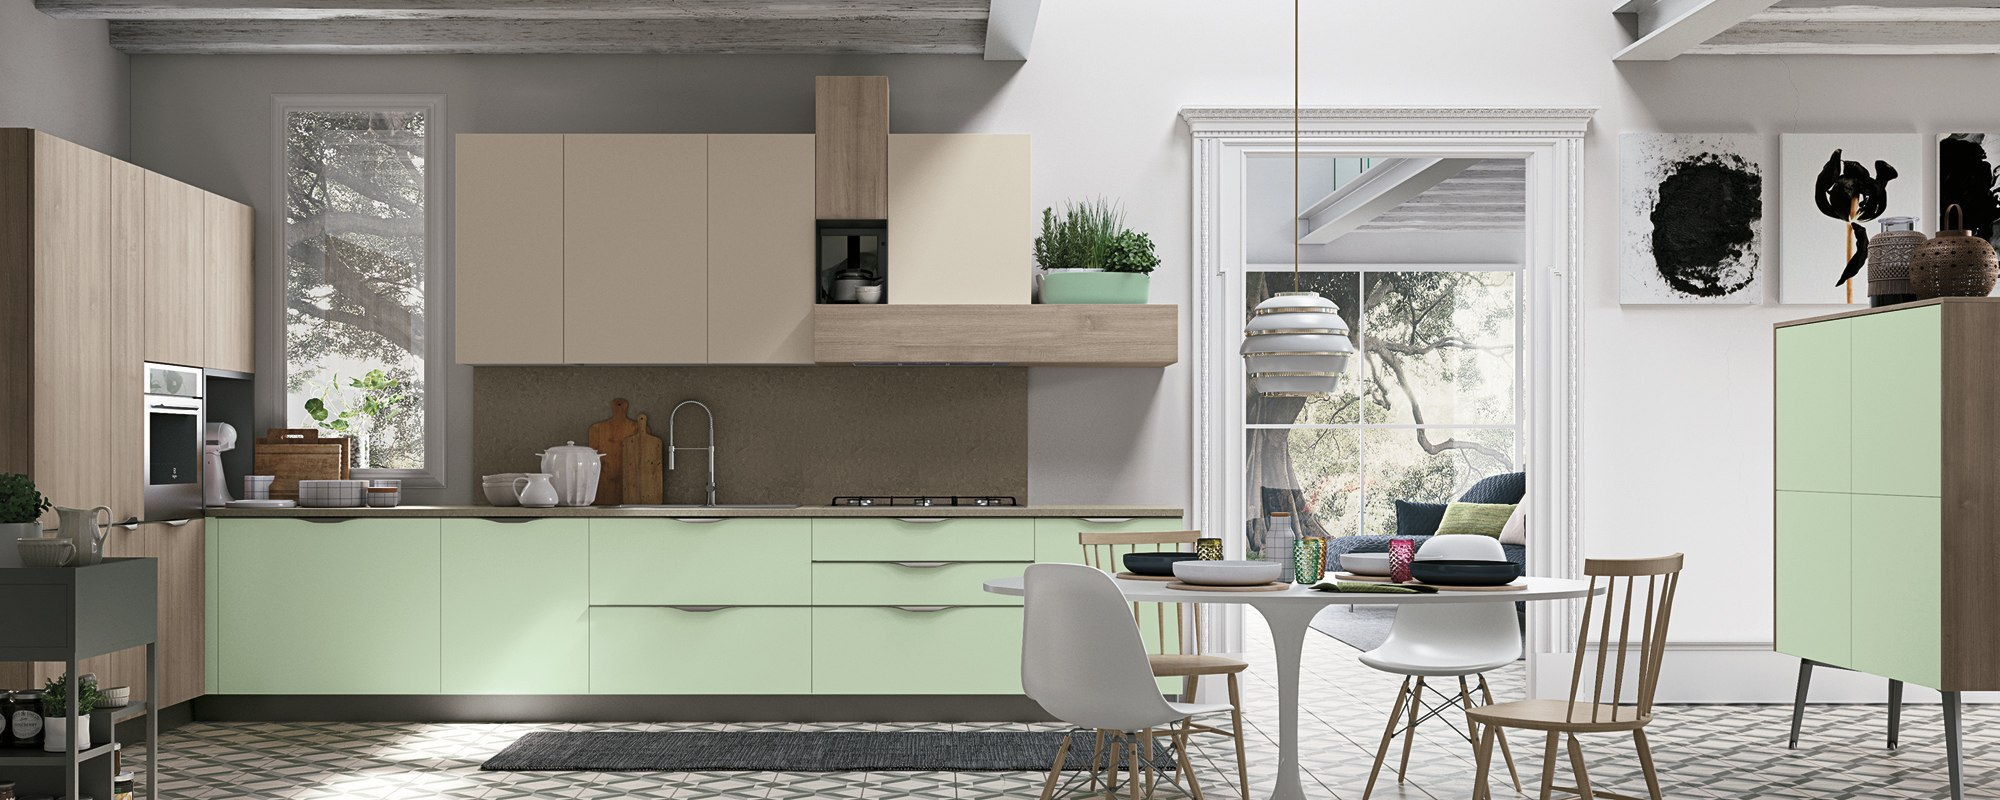 Stosa Cucine Moderne. Excellent Stosa Cucine Moderne With ...